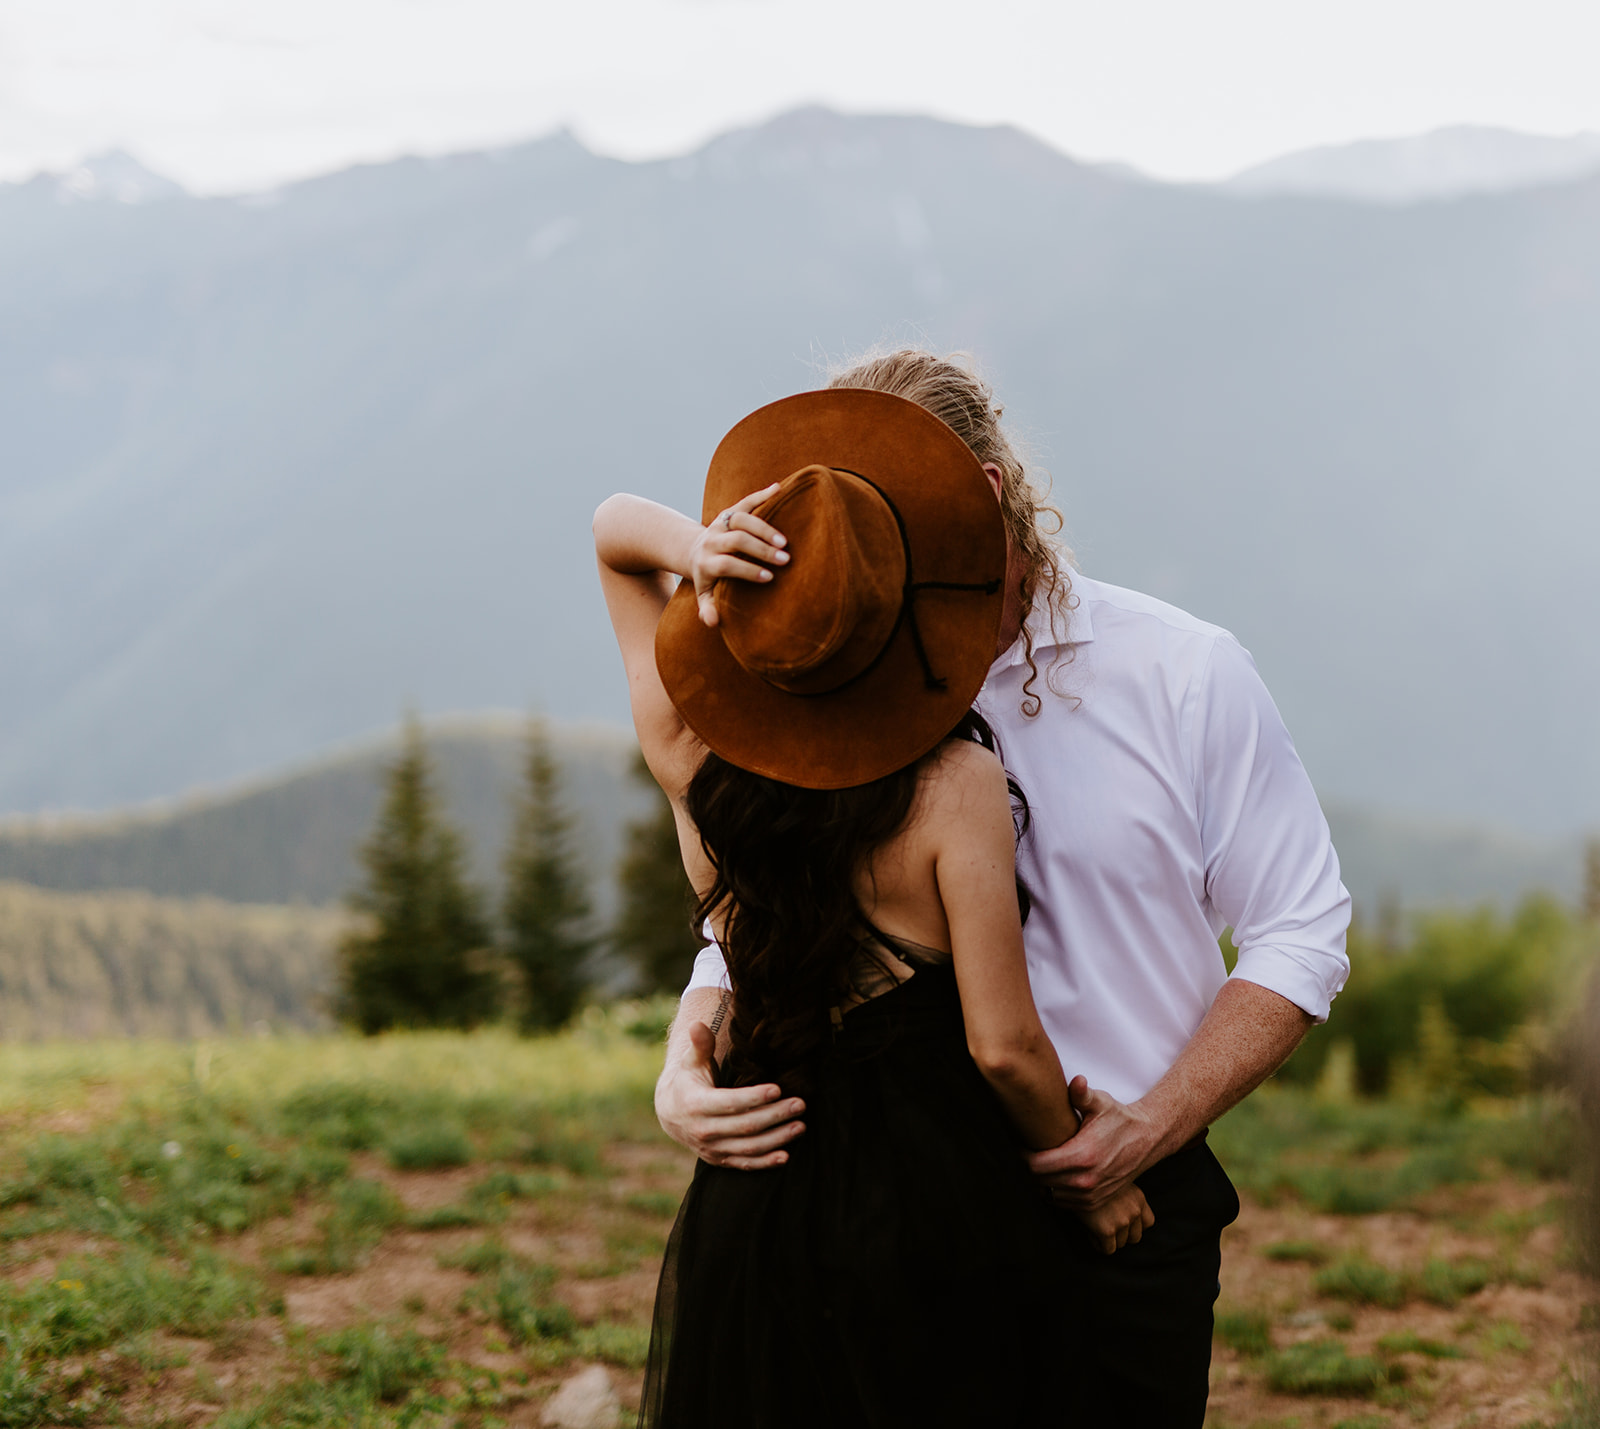 Adventure styled elopement in Aspen, Colorado at The Little Nell